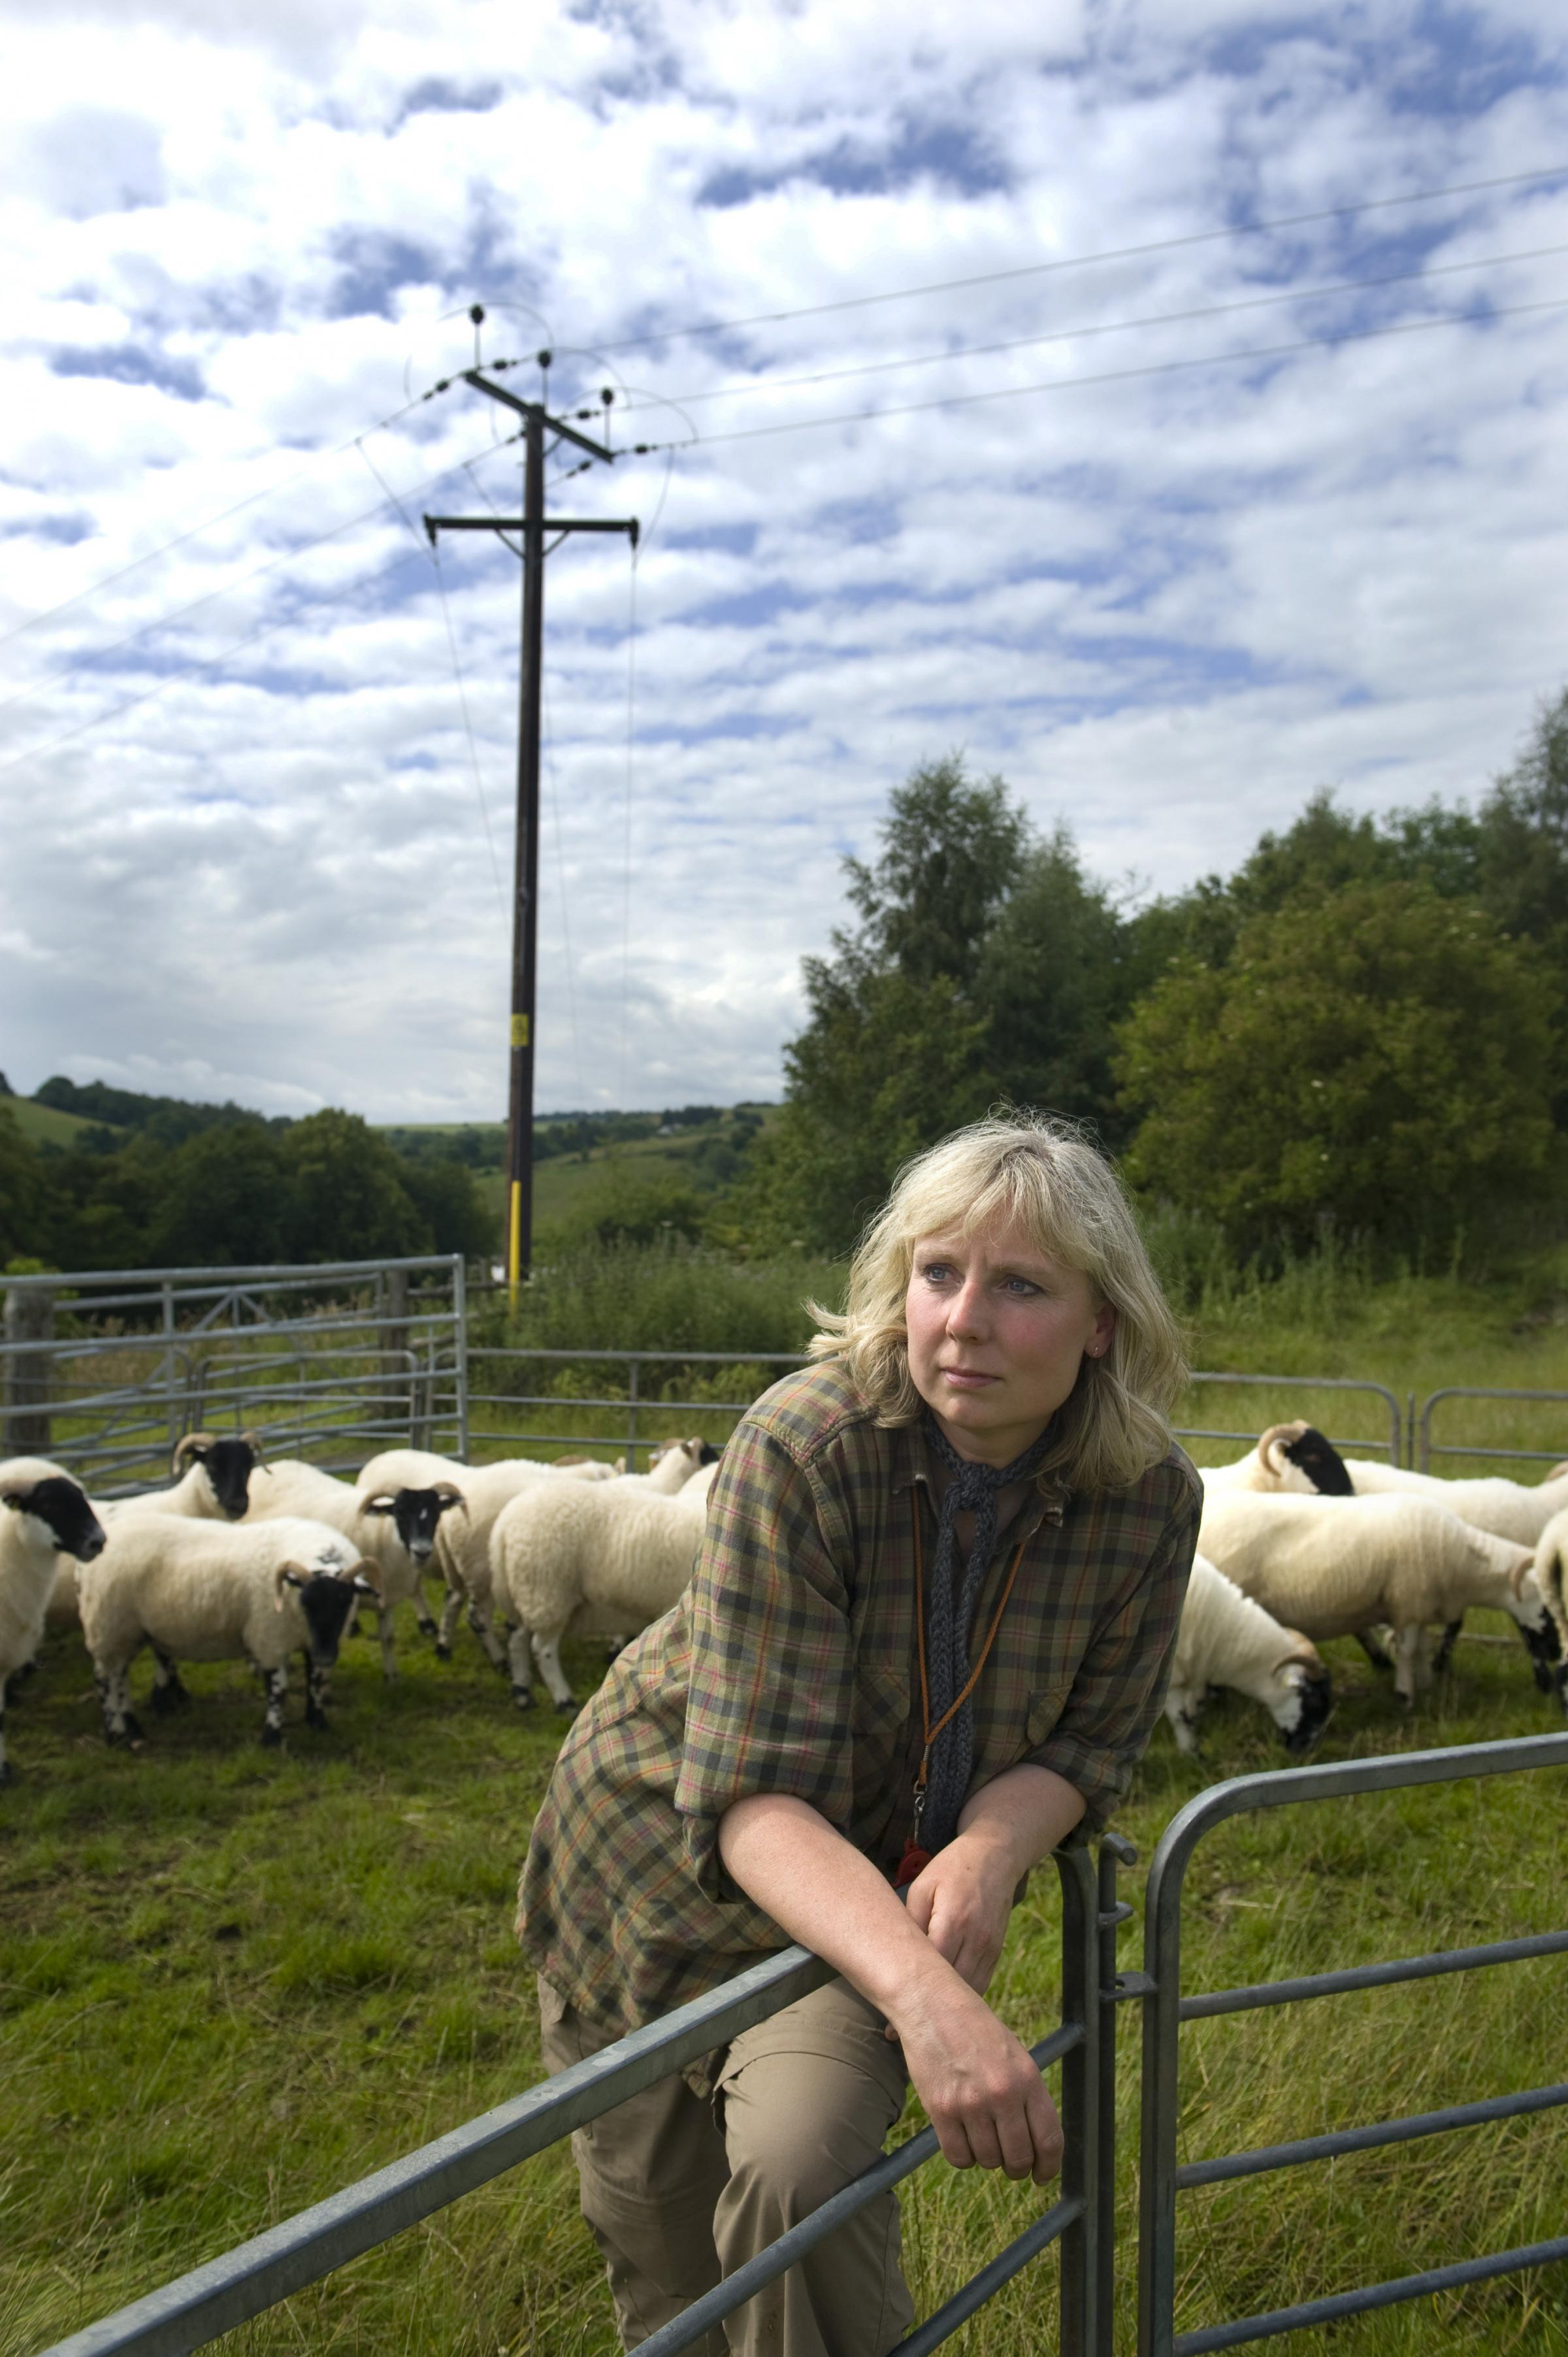 HELEN DOUGLAS: She lives close to the proposed wind farm and asked the judge to to overturn the planning permission granted to the company, but he rejected her appeal